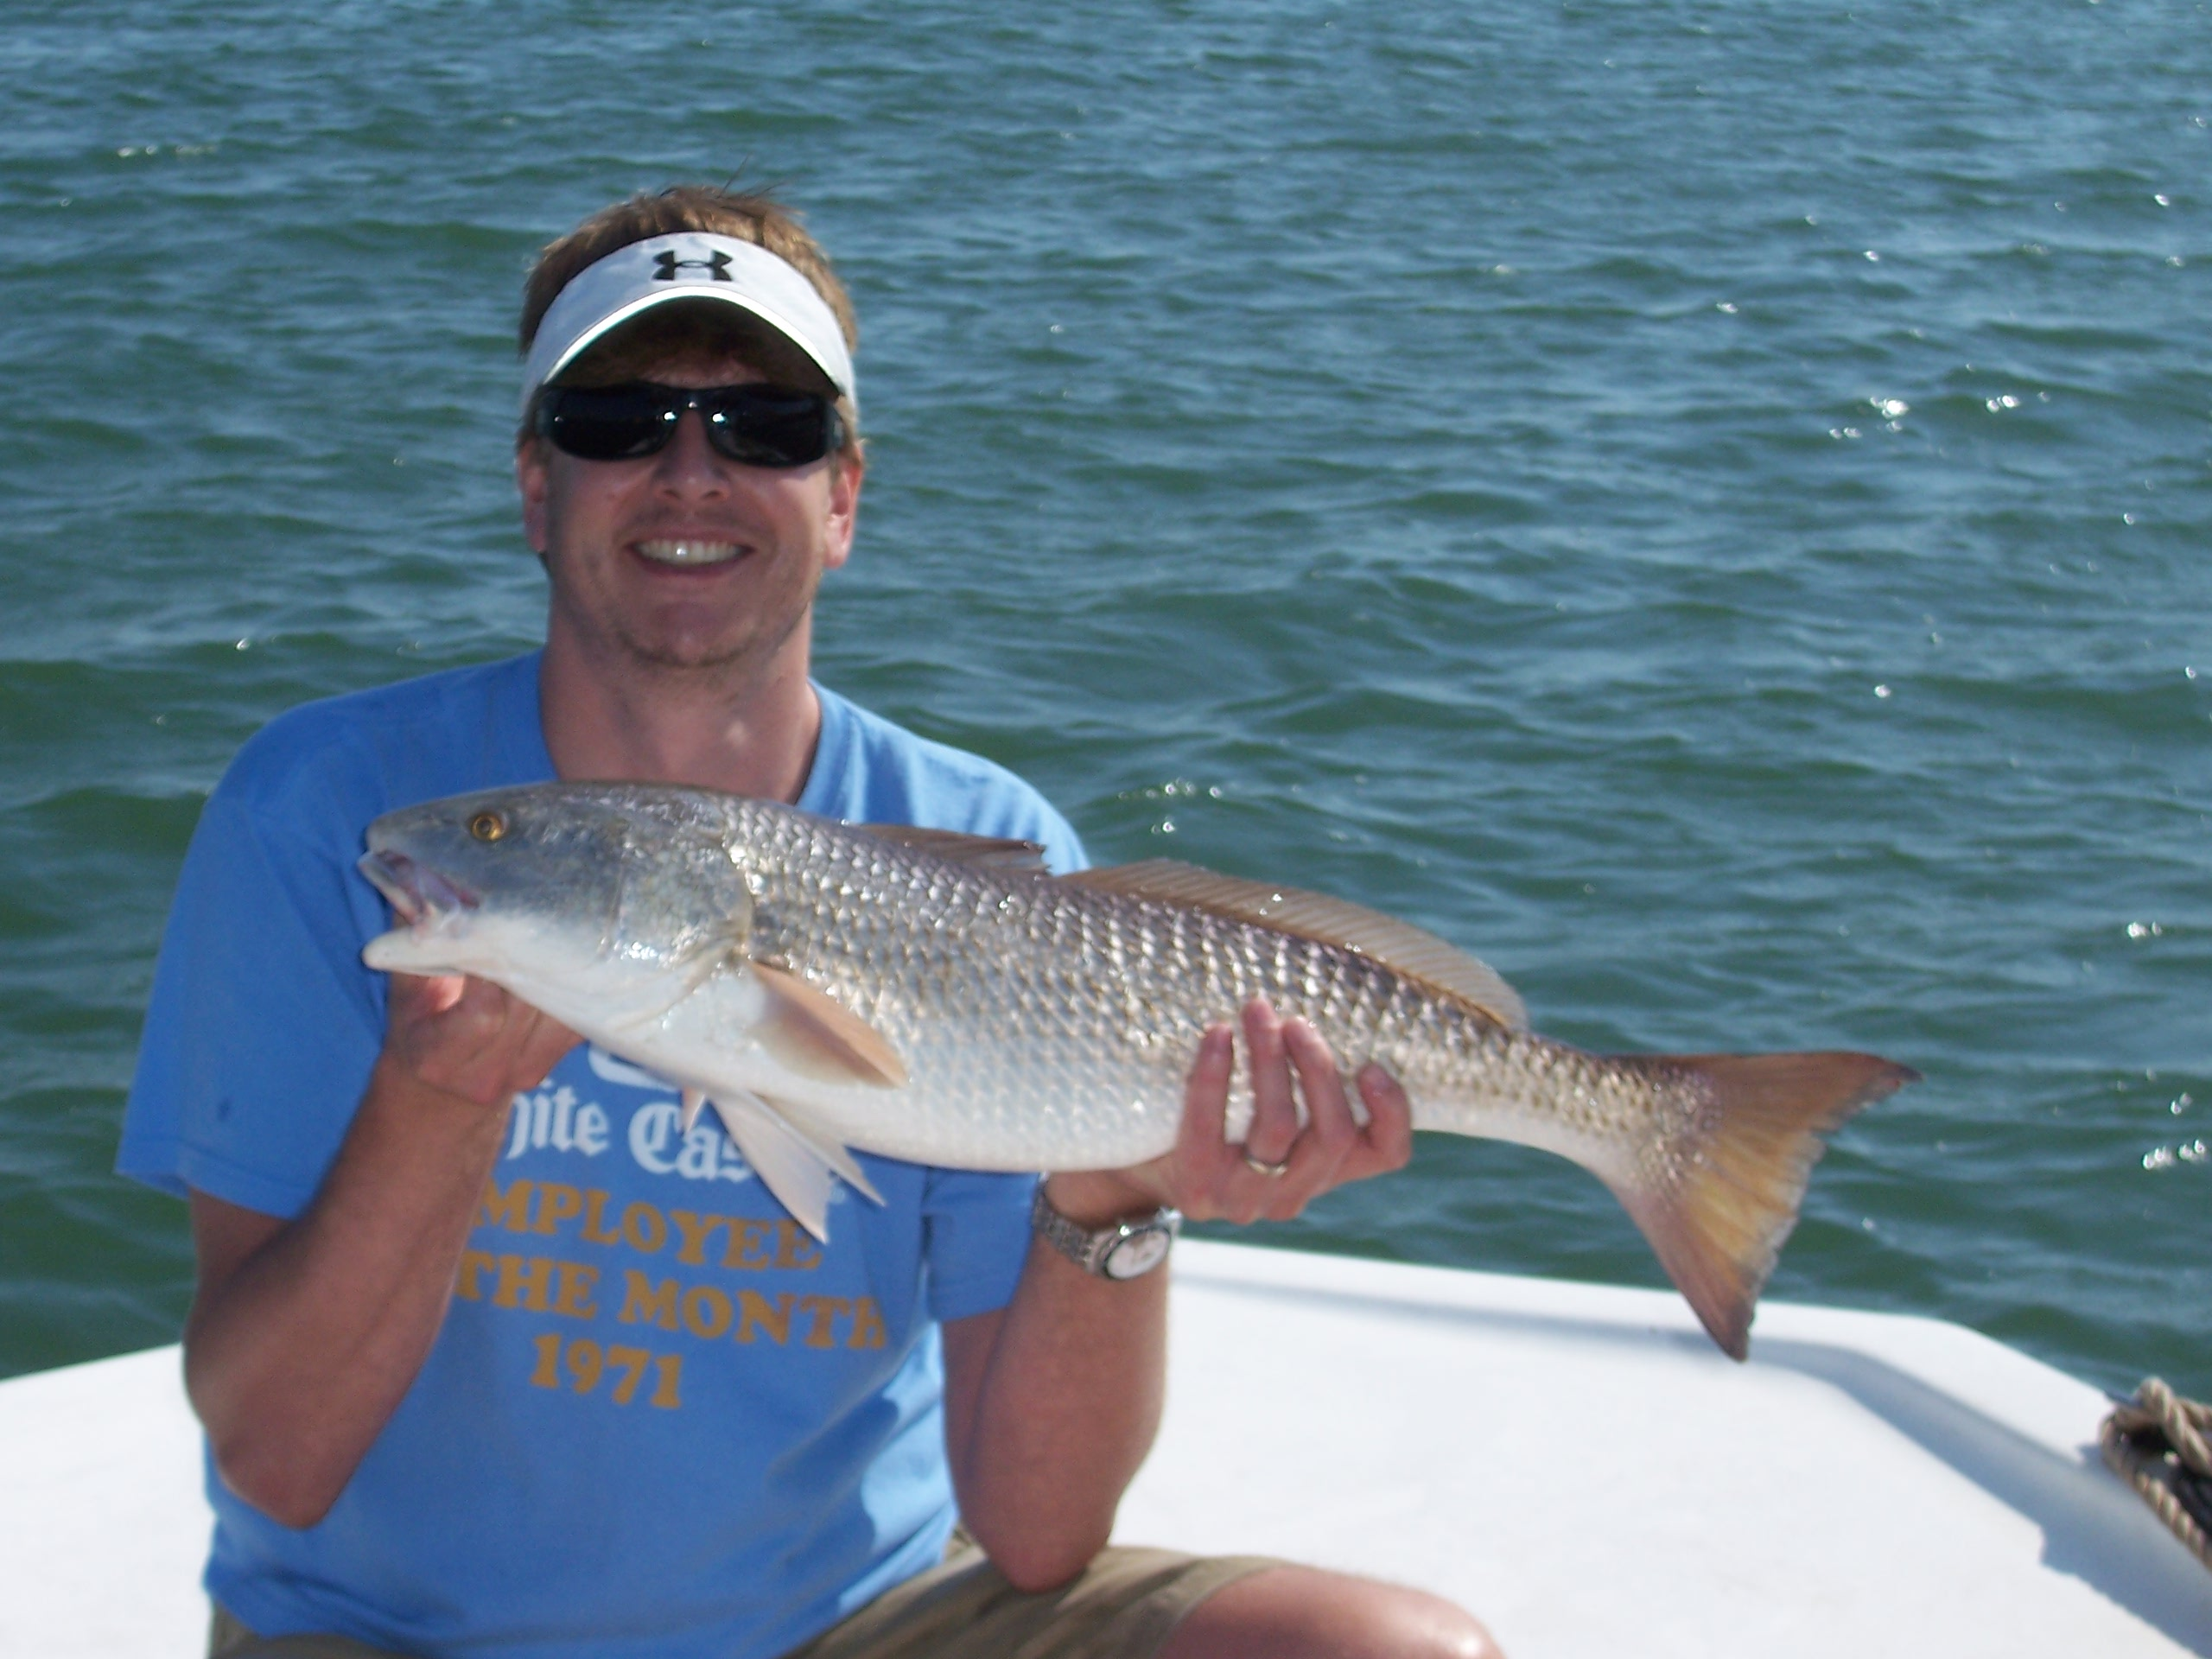 sarasota florida fishing report rodbender fishing